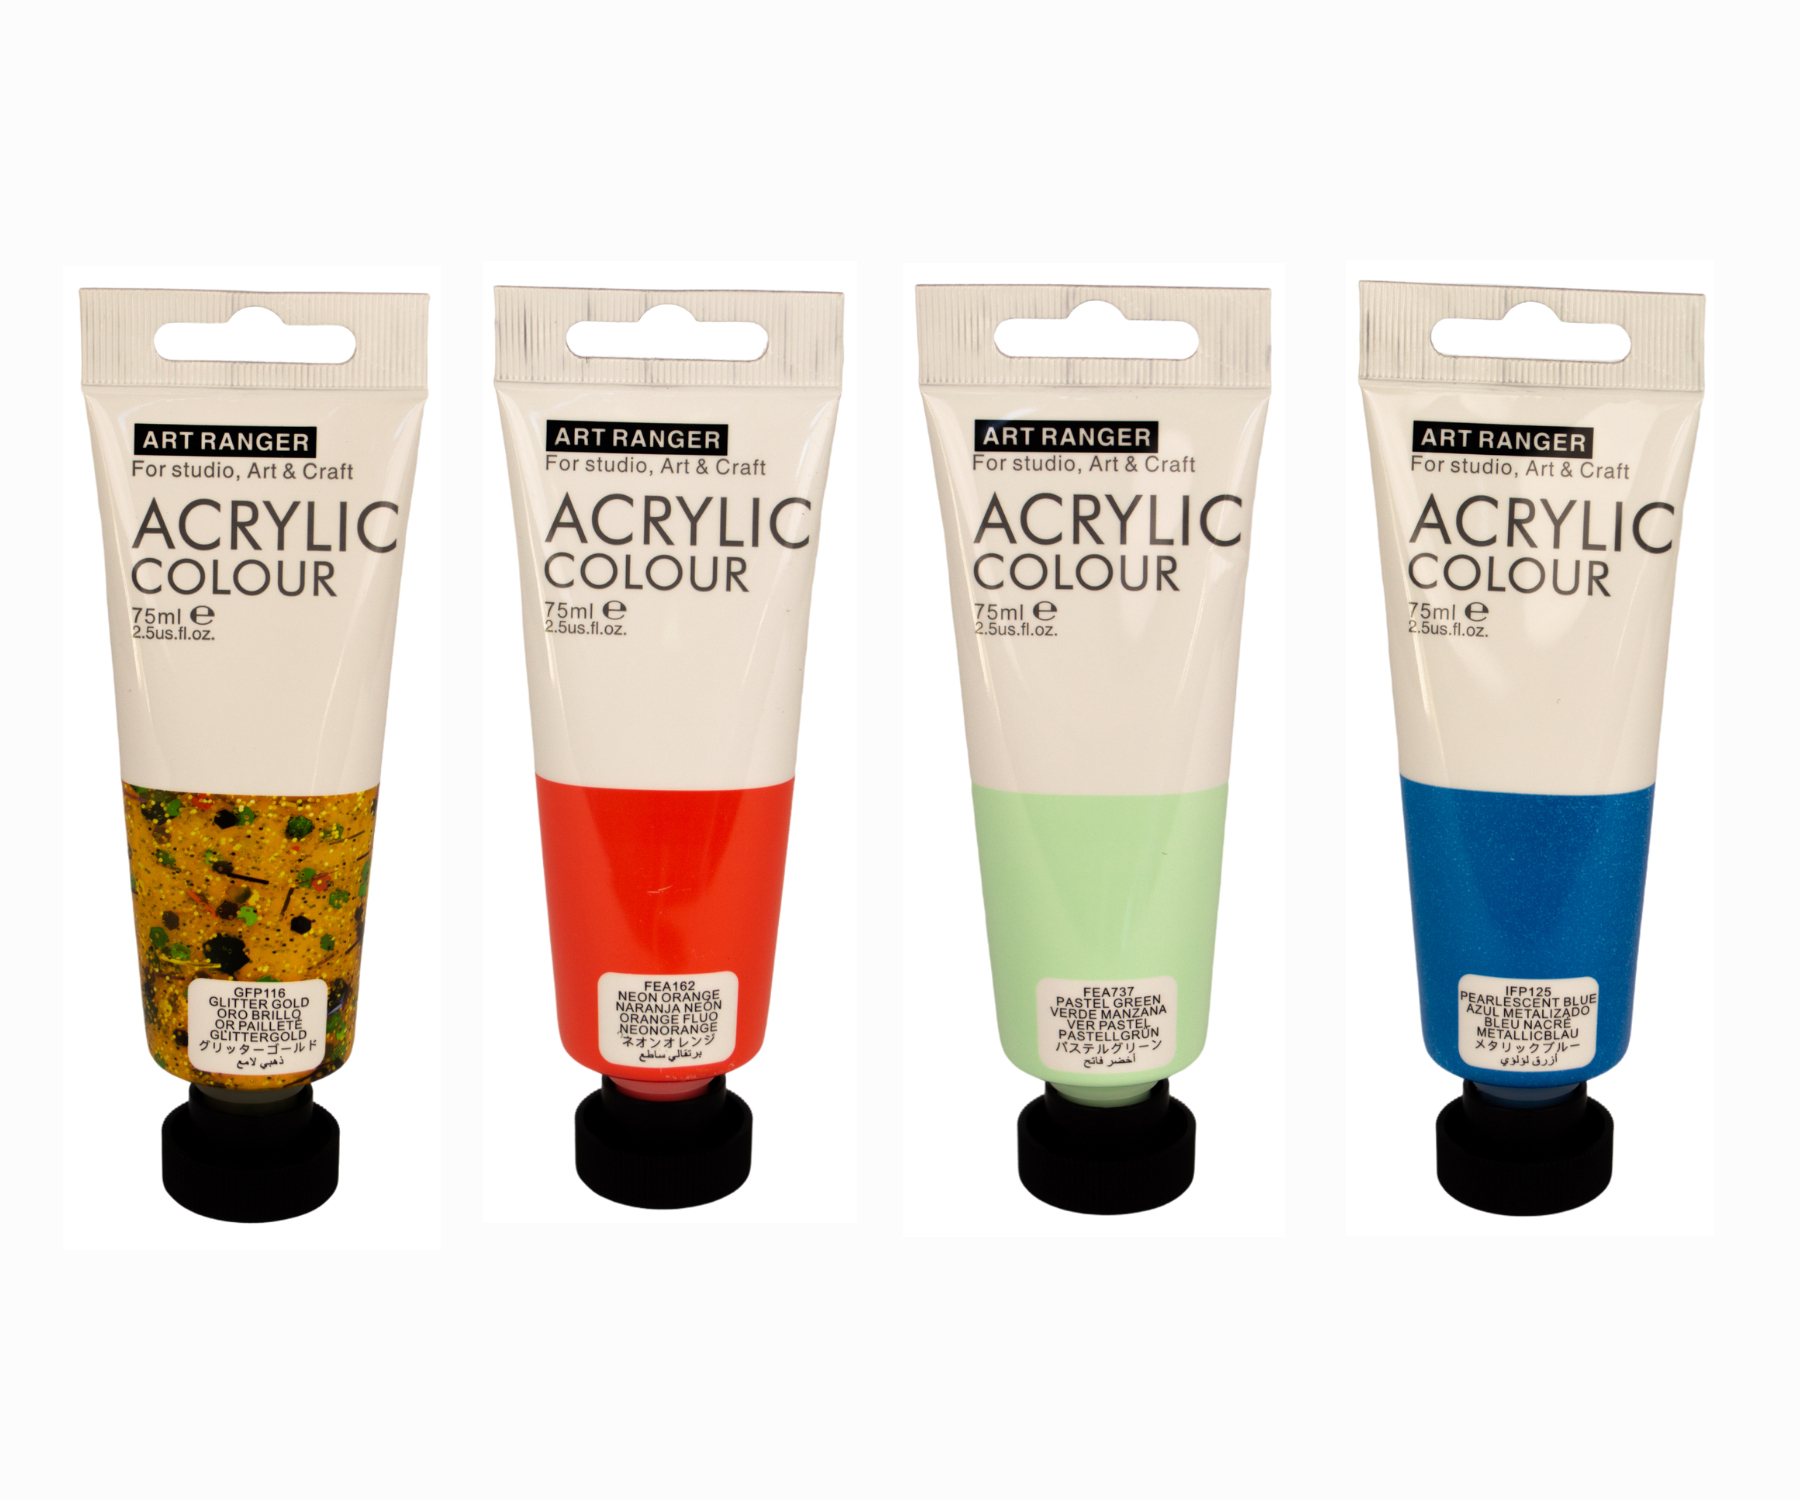 Art Rangers Acrylic Colour 75ml